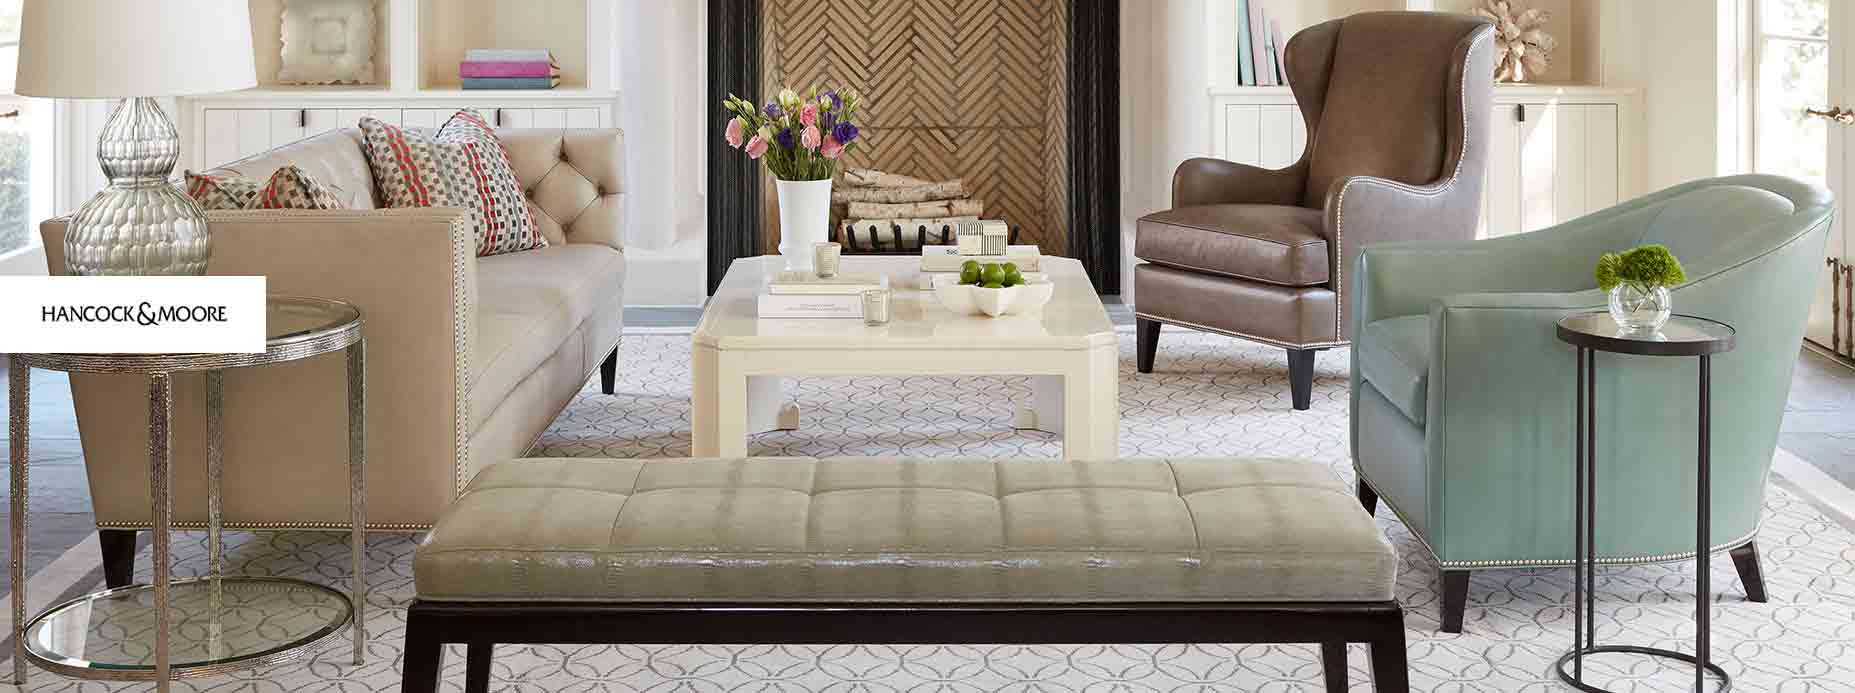 Living Room Furniture North Carolina North Carolina Discount Furniture Stores Offer Brand Name